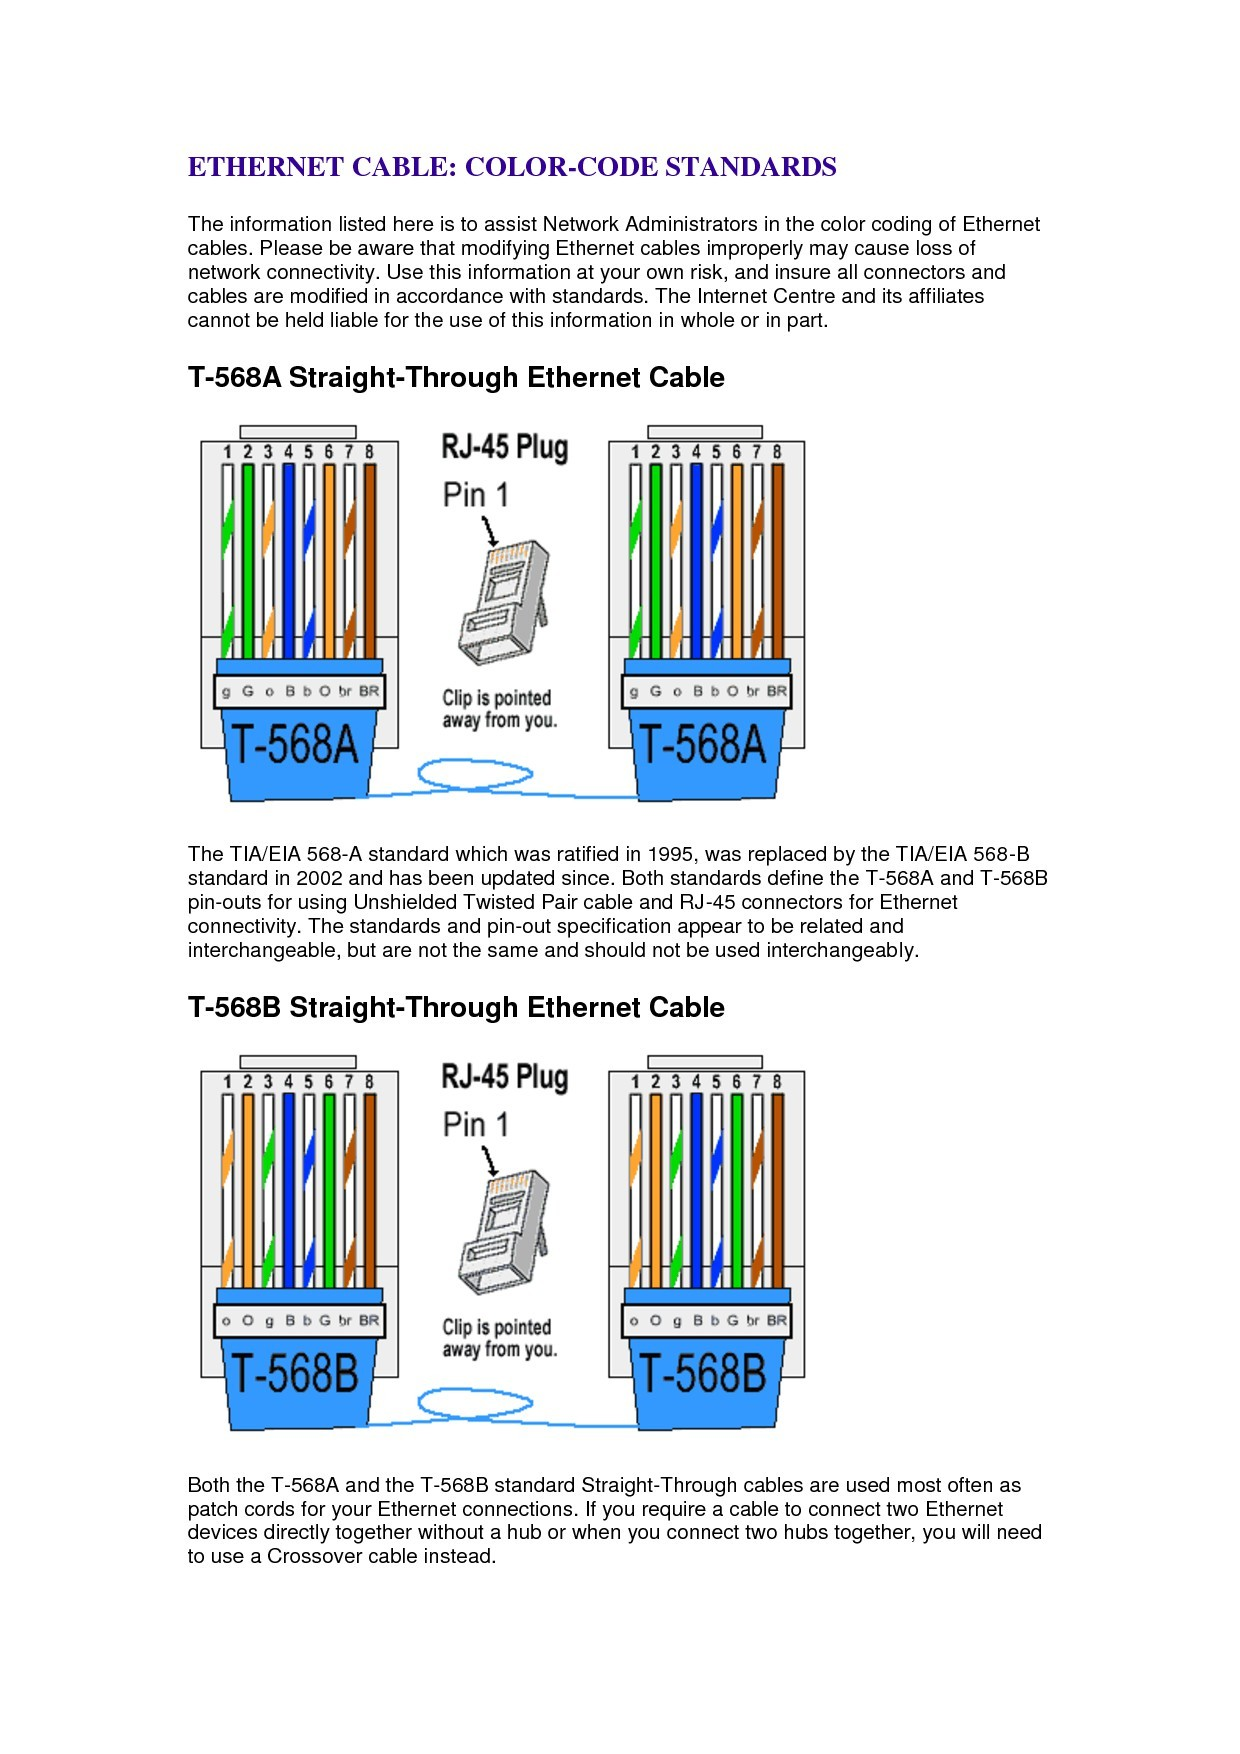 Network cat 6 wiring diagram search for wiring diagrams cat 6 wiring diagram pdf inspirational wiring diagram image rh mainetreasurechest com cat 6 ethernet cable swarovskicordoba Gallery